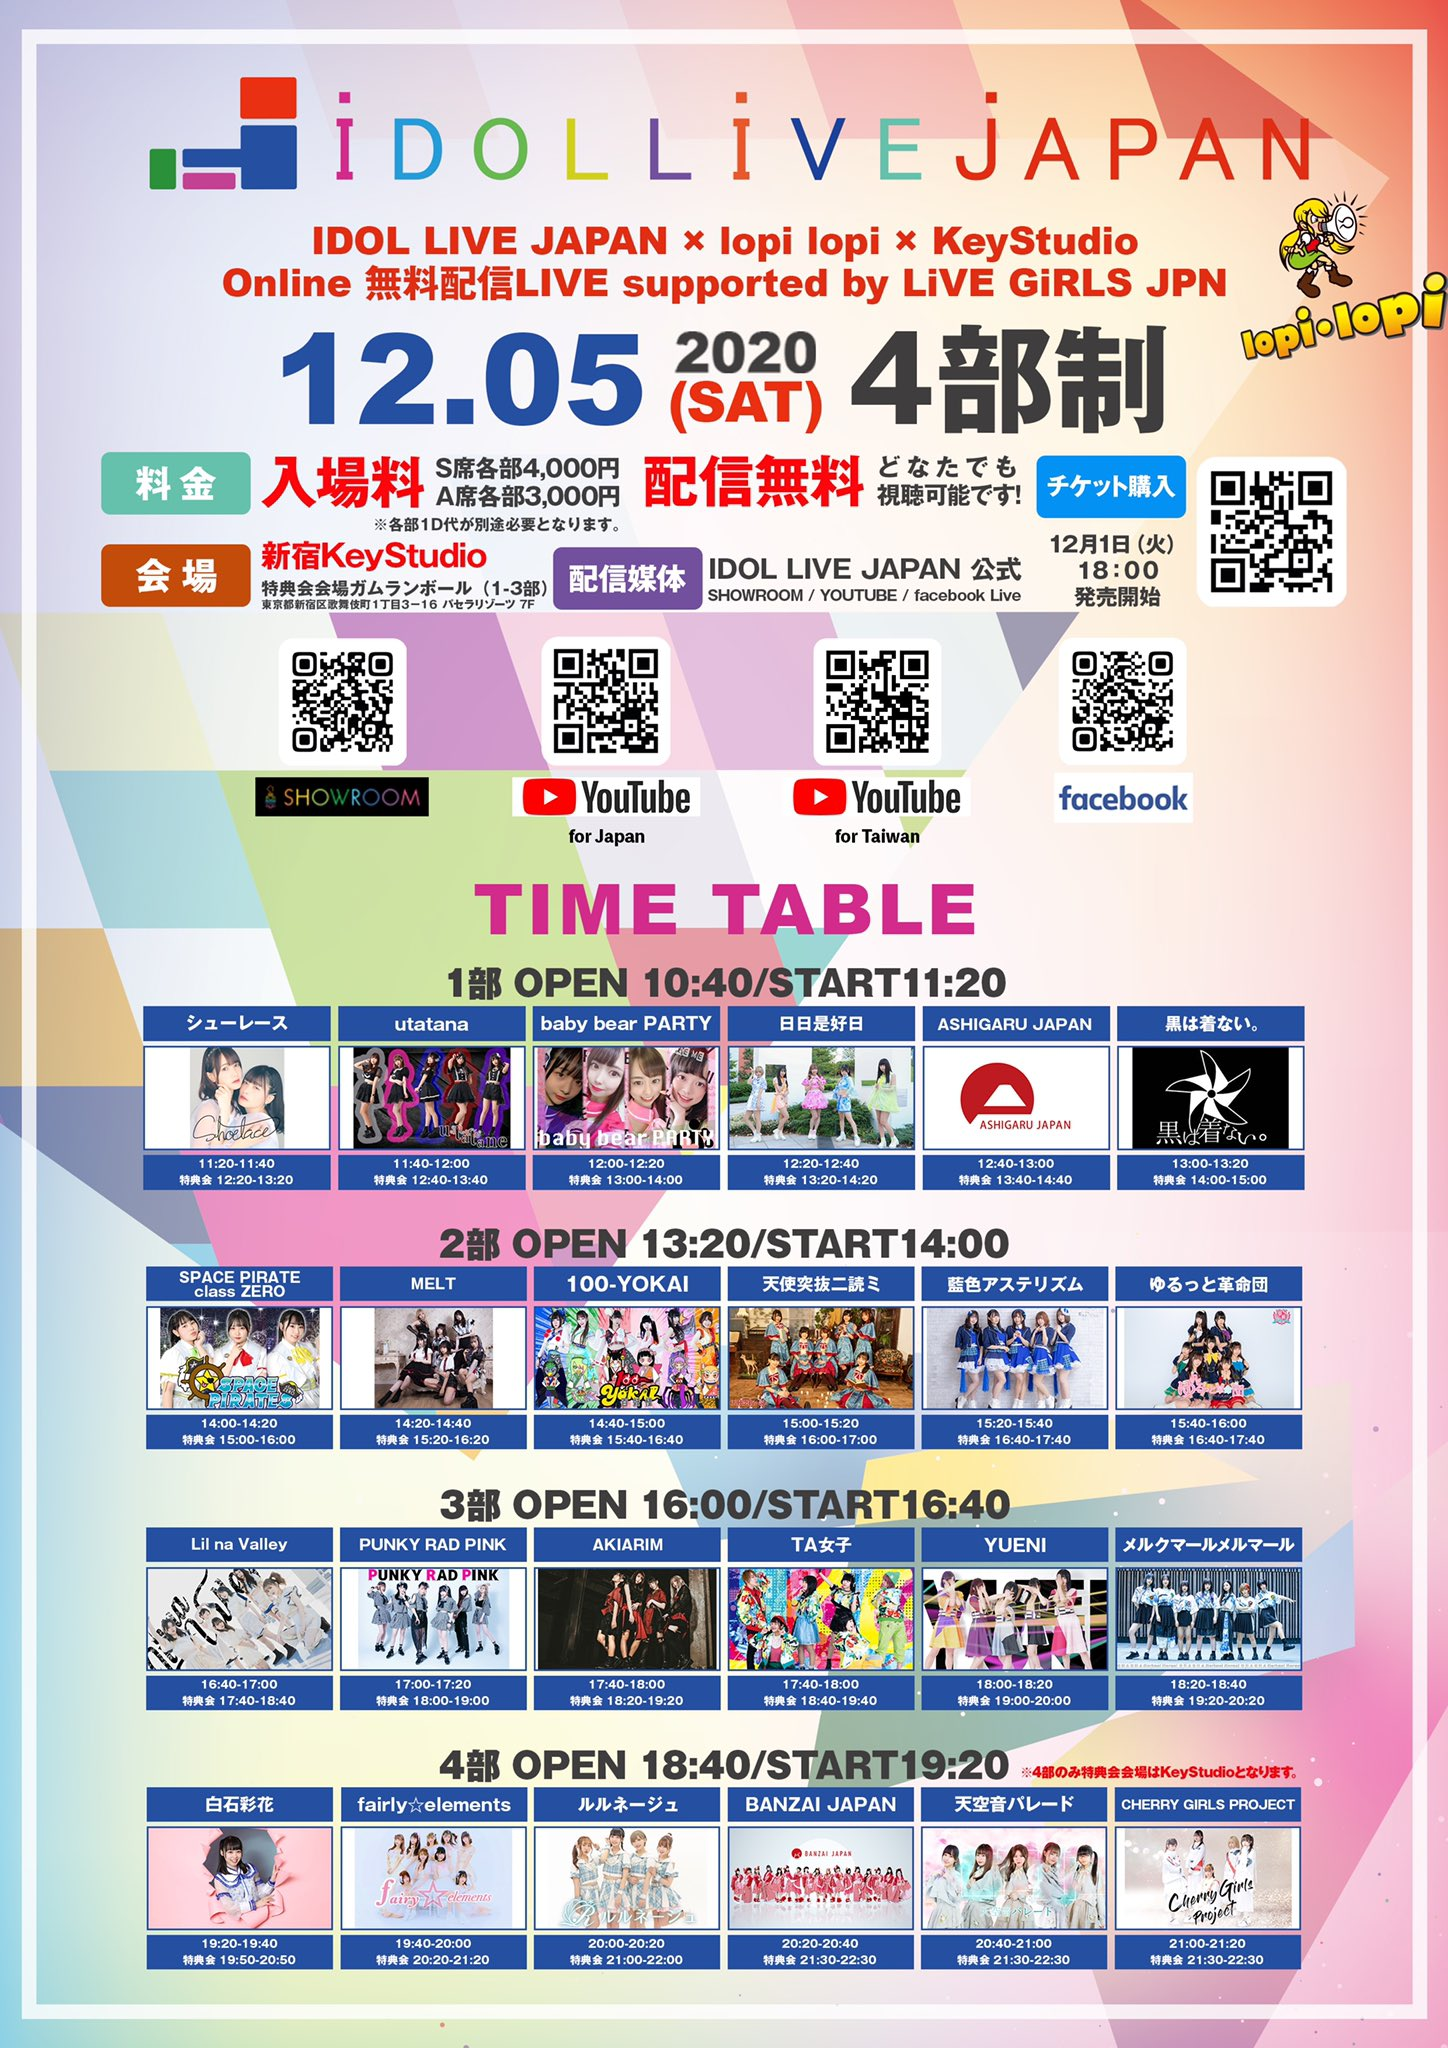 【IDOL LIVE JAPAN】12月5日(土)IDOL LIVE JAPAN × lopi lopi × KeyStudio supported by LiVE GiRLS JPN